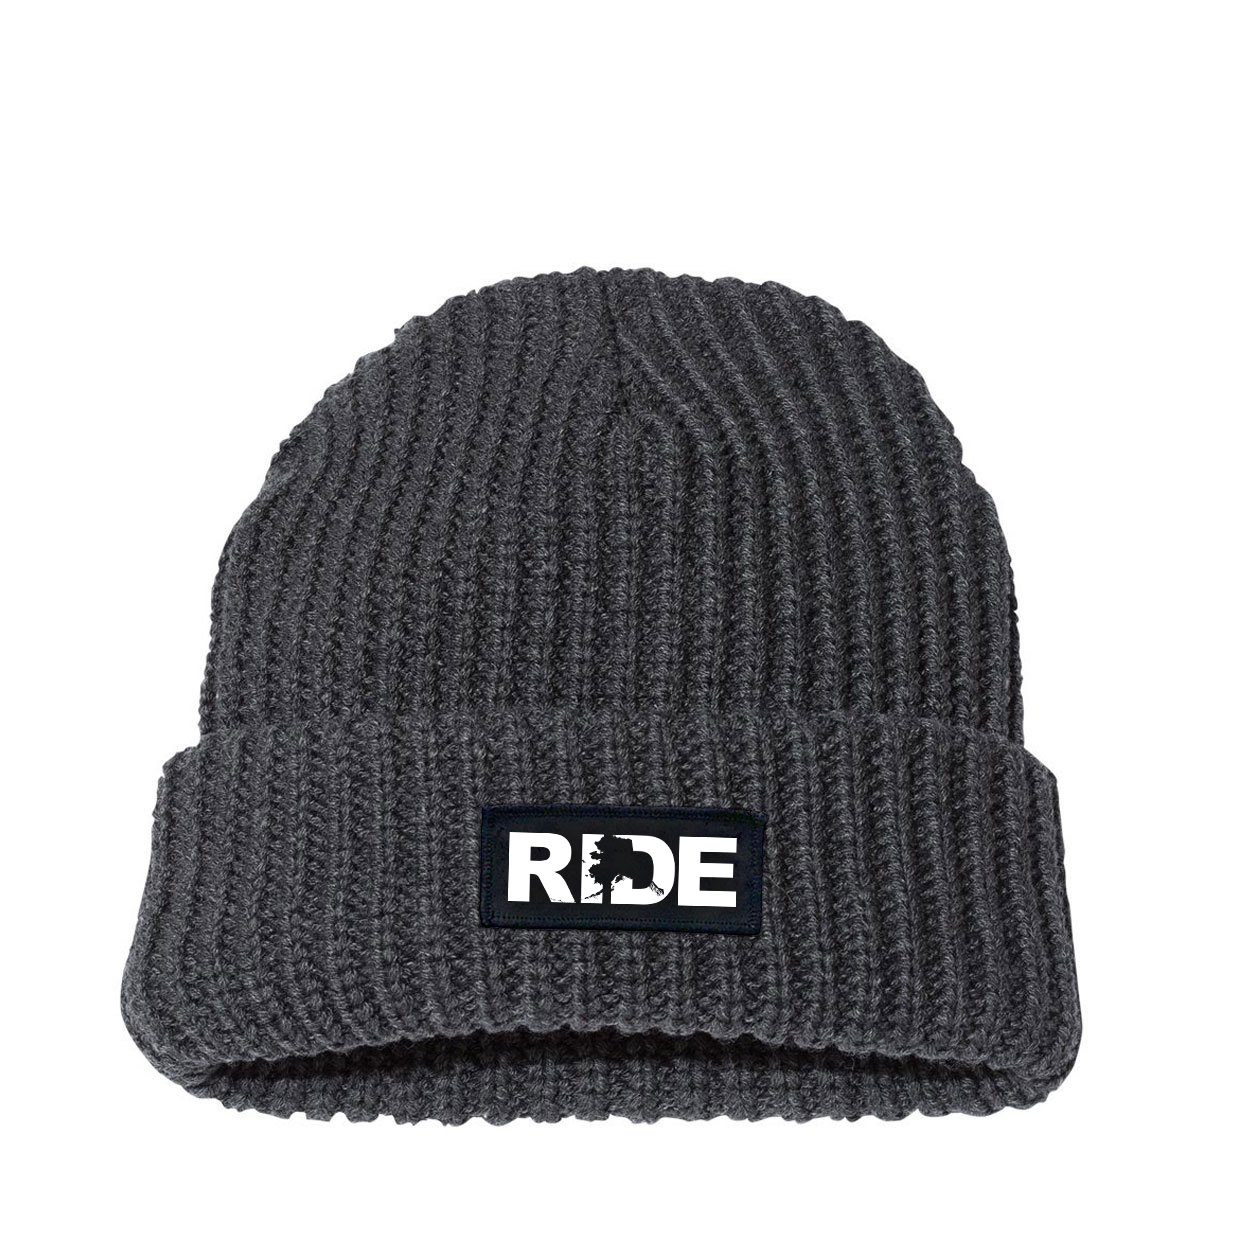 Ride Alaska Night Out Woven Patch Roll Up Jumbo Chunky Knit Beanie Charcoal (White Logo)